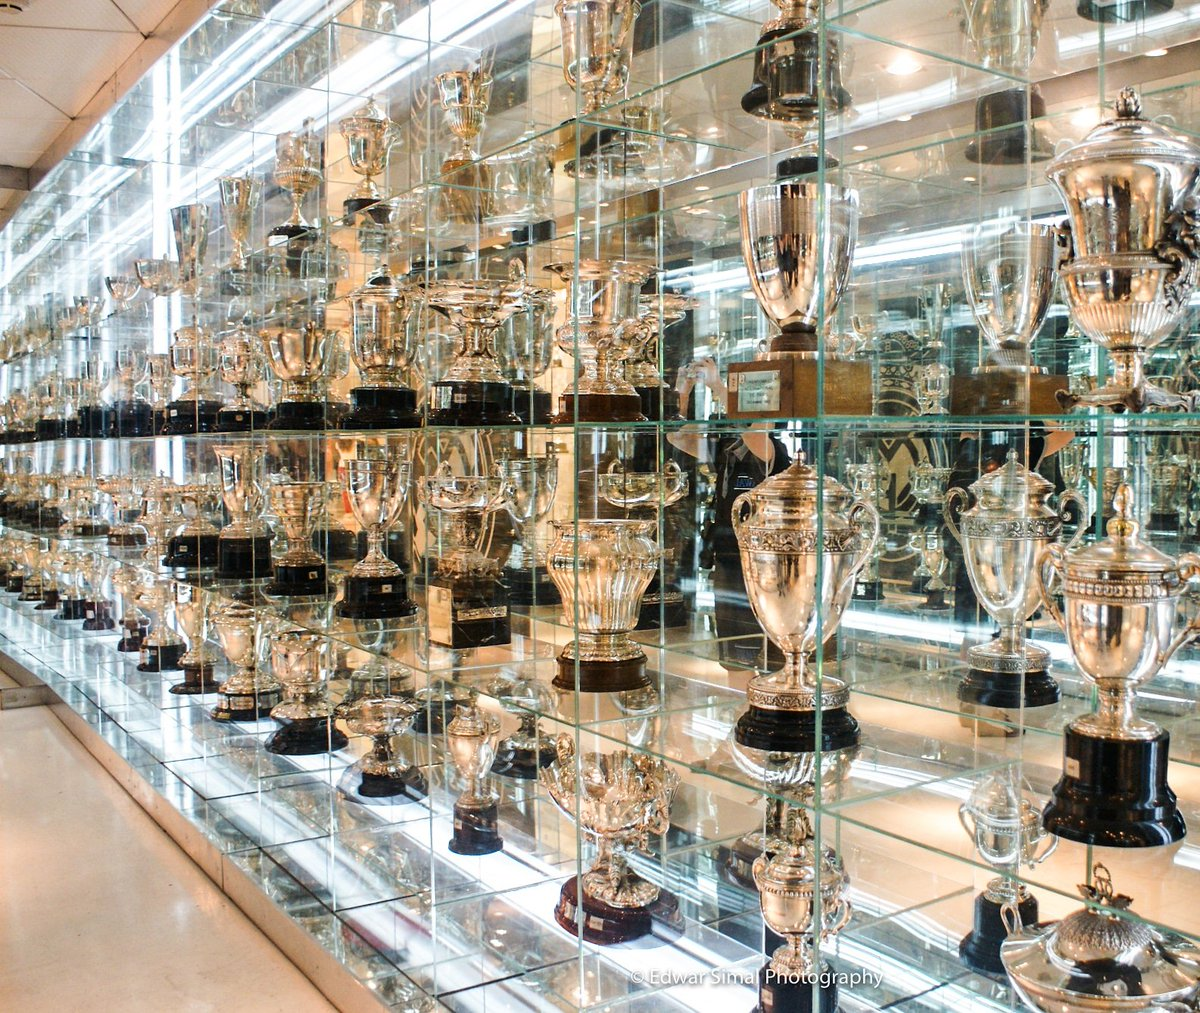 Edwar Simal On Twitter Real Madrid Trophies Room